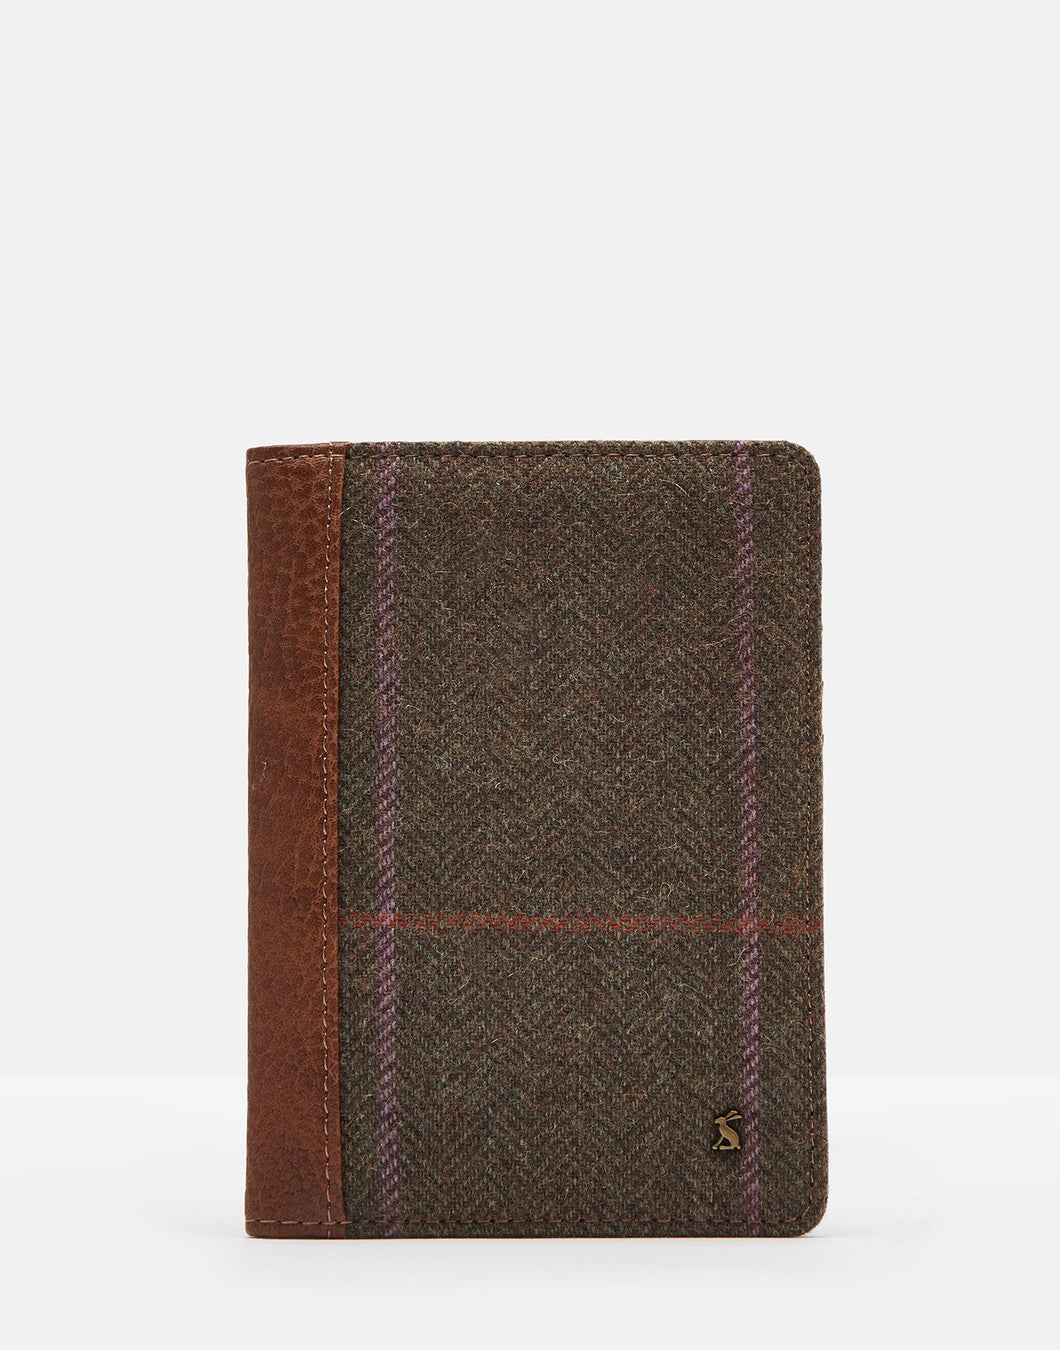 Joules | Jetsetter Tweed Passport Holder | Hardy Tweed